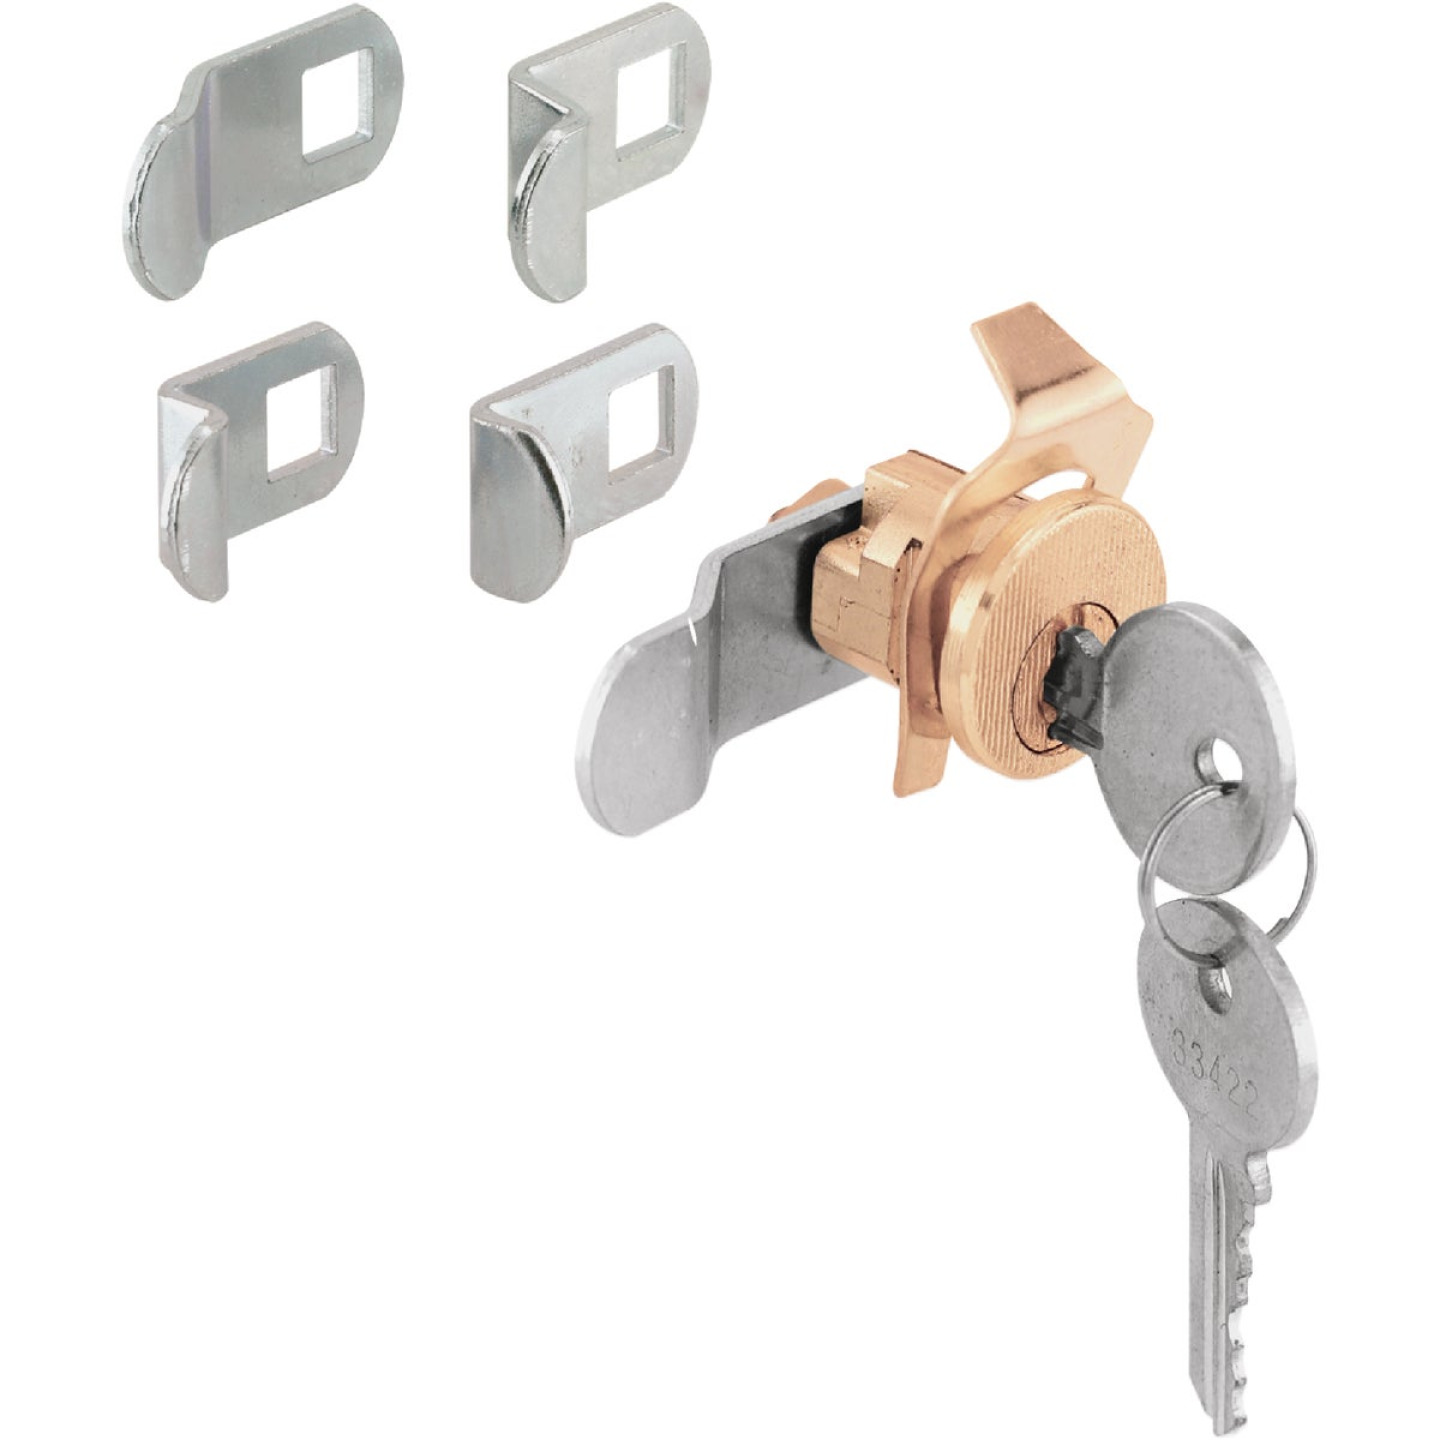 Defender Security Brass Multi-Purpose Mailbox Lock Image 1